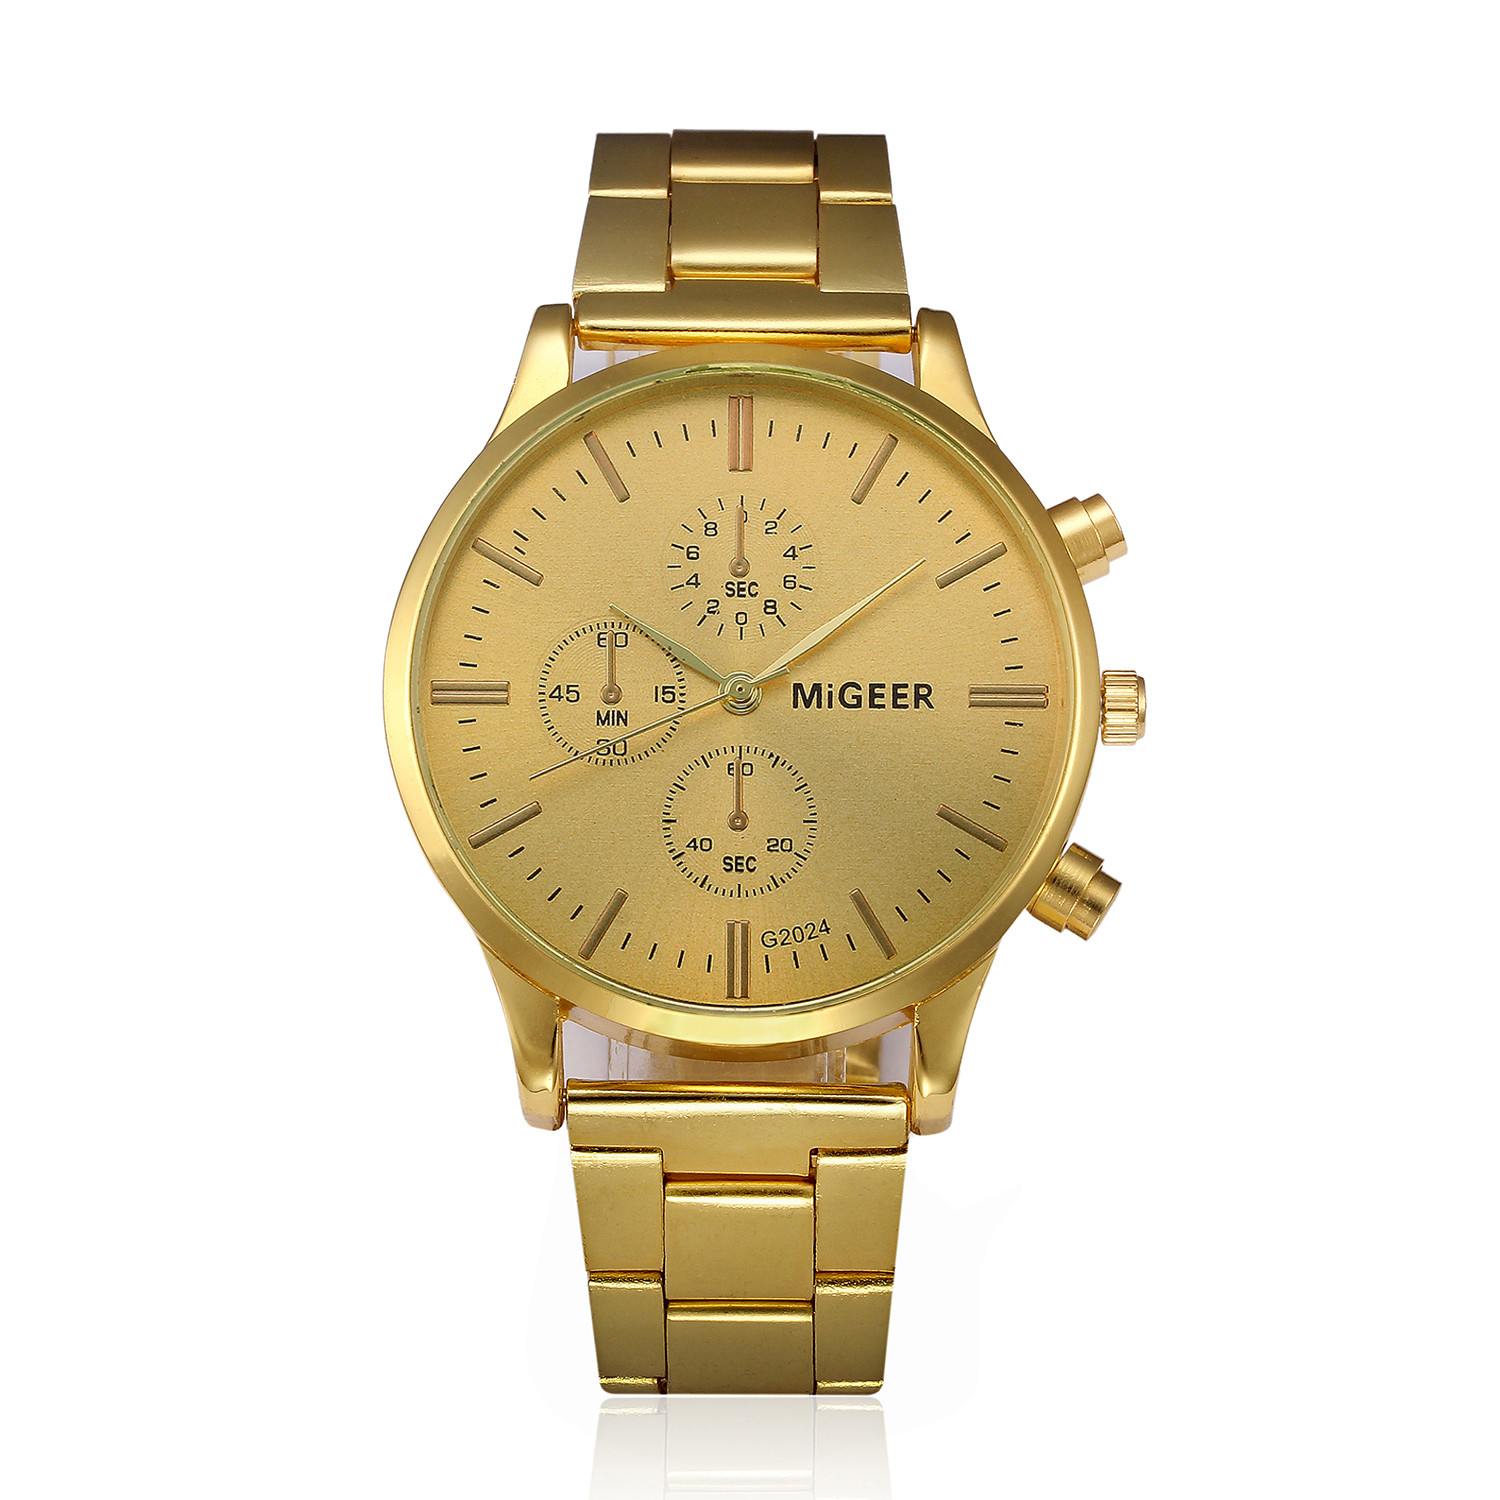 Fashion Golden Stainless Steel Quartz Wrist Watch Mens Watch Crystals Chronograph Plated Classic Wristwatch Montre pour homme